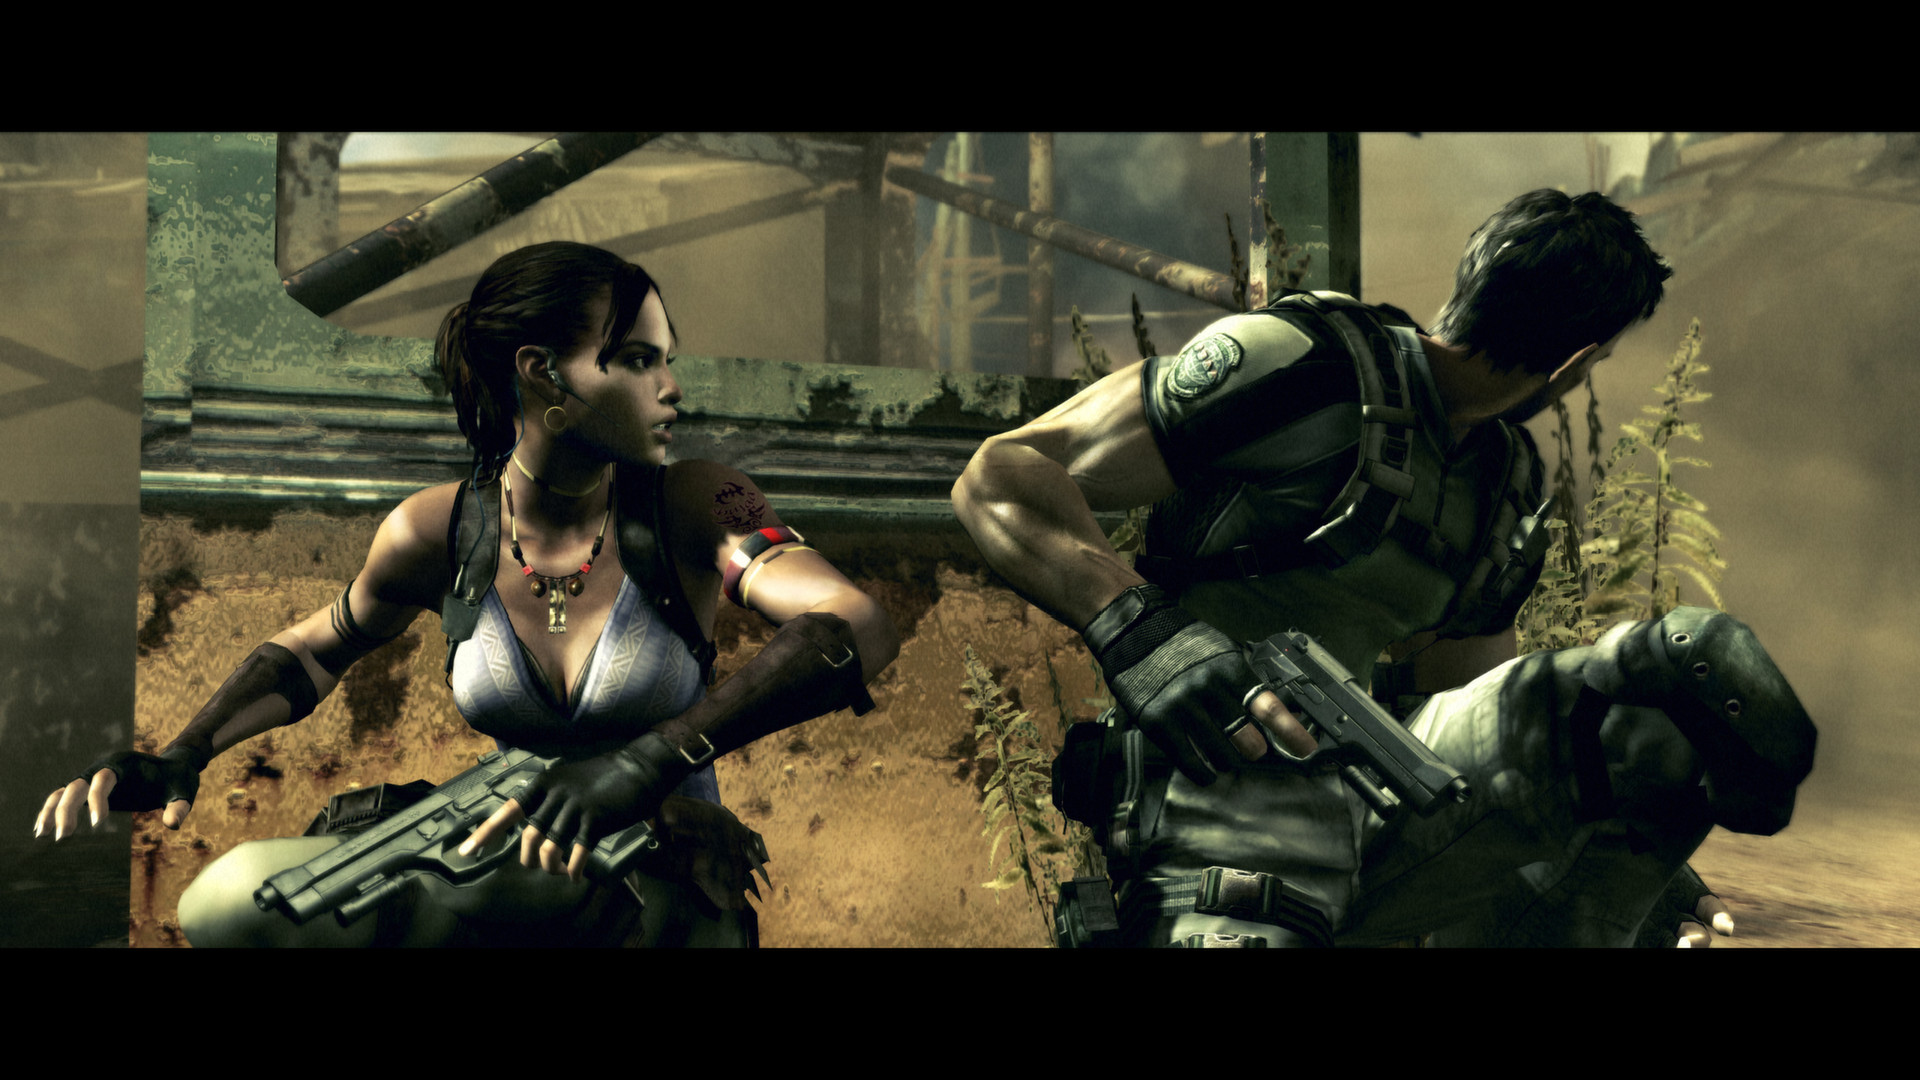 resodent evil biohazard how to kill